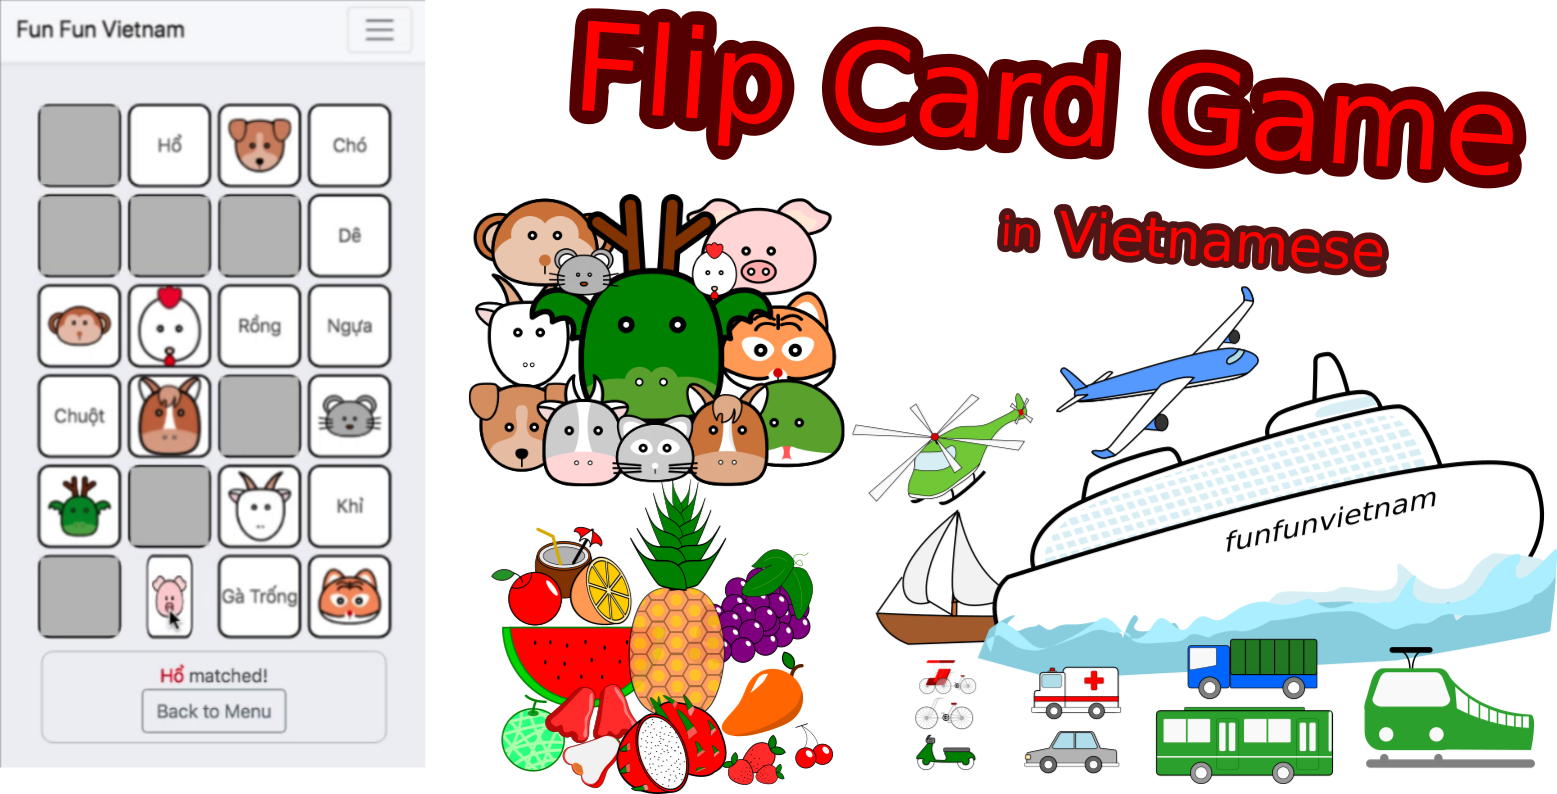 Flip Card Game for learning Vocabuary